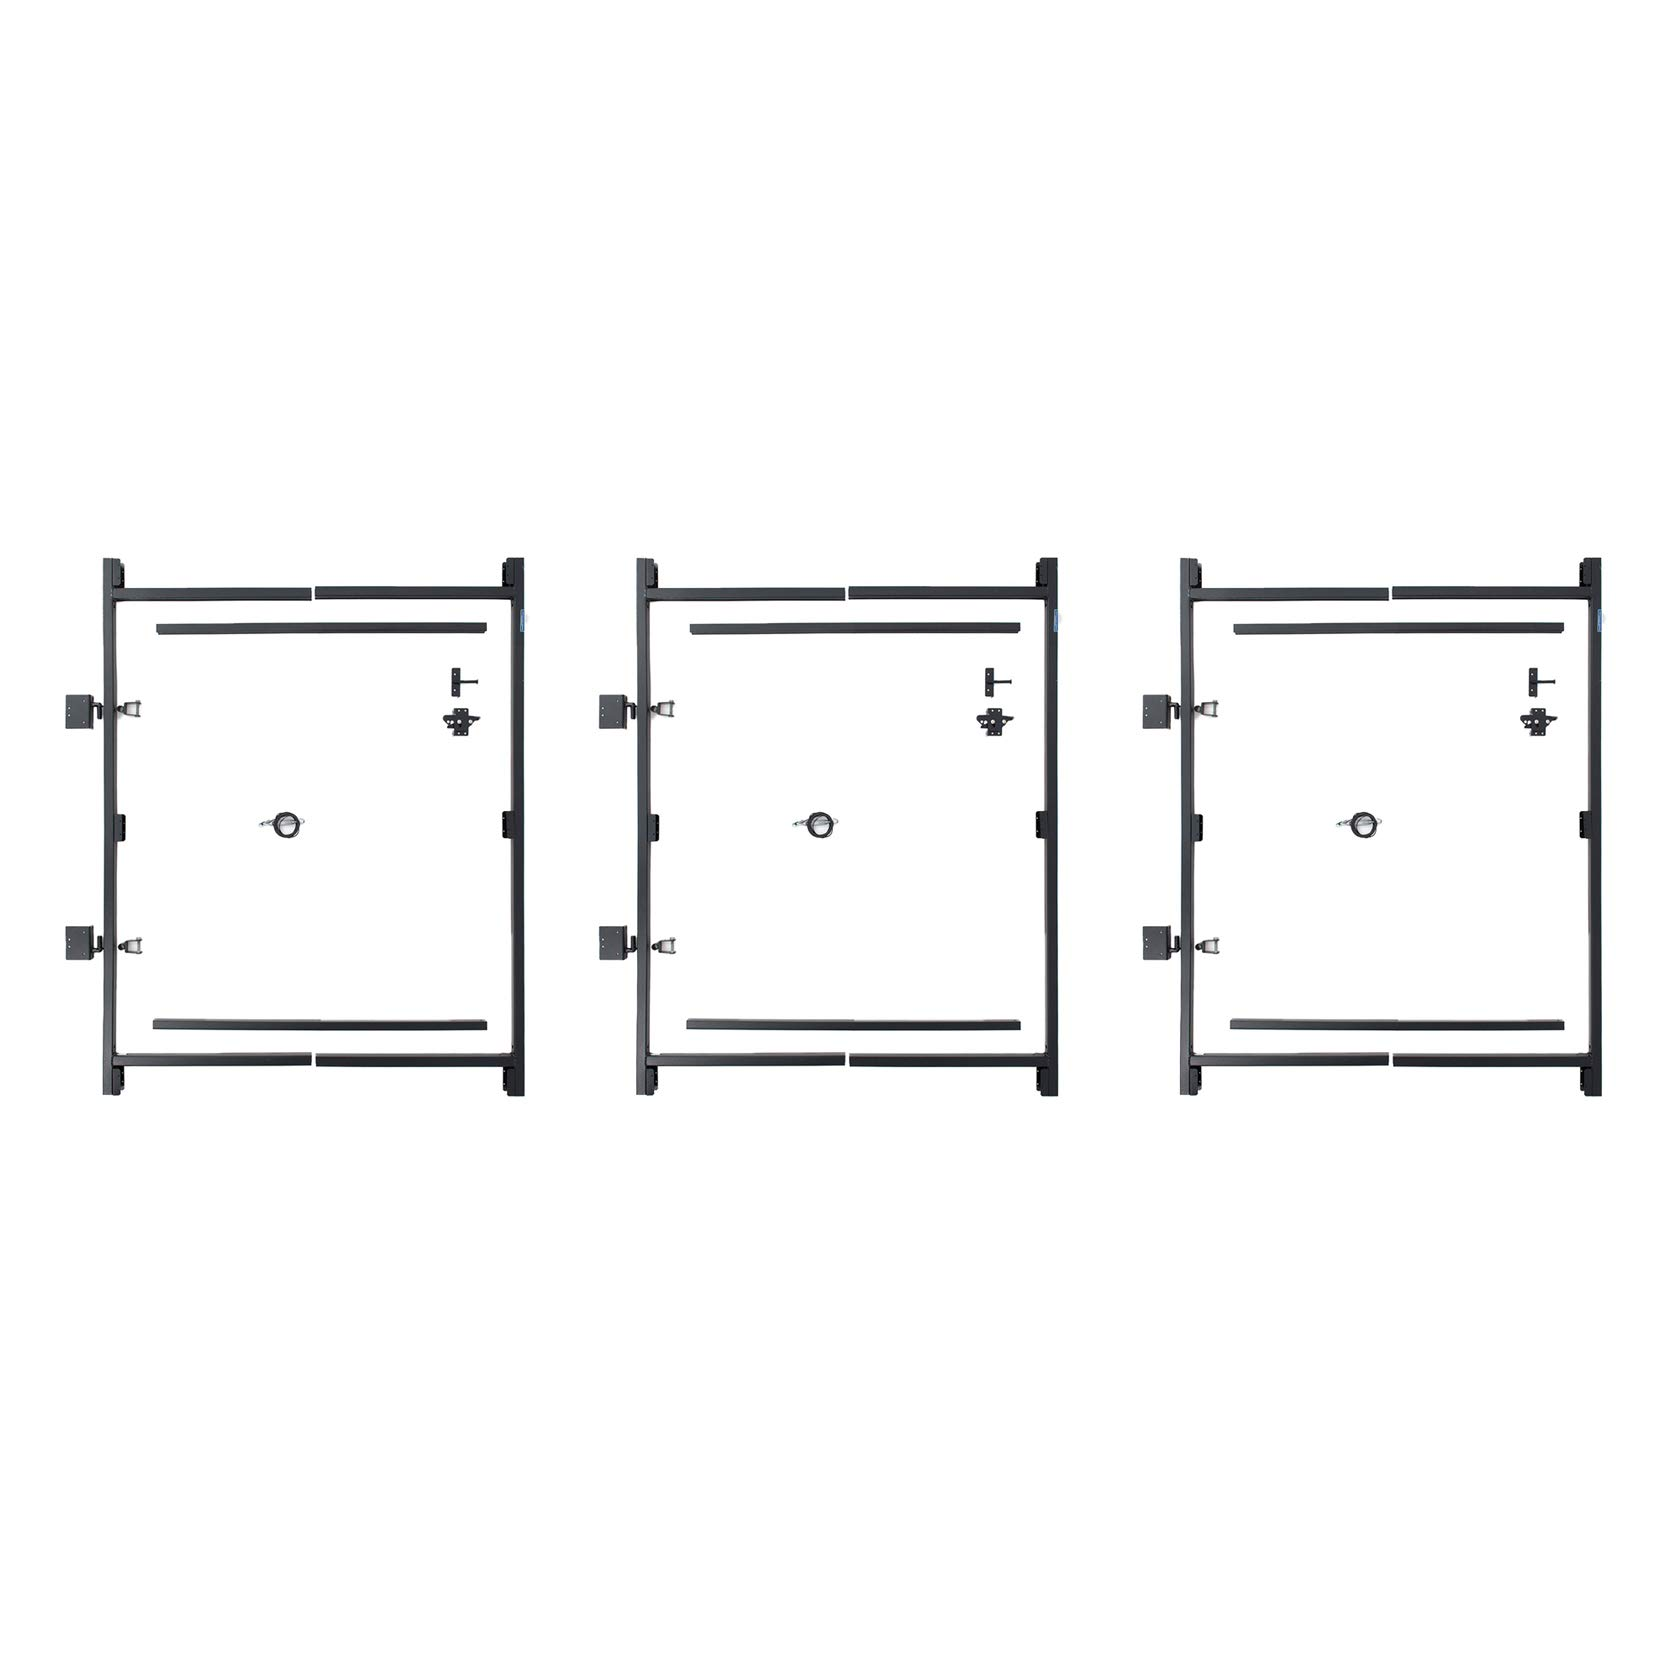 Adjust-A-Gate Steel Frame Gate Building Kit, 36''-60'' Wide Opening Up to 7' High (3 Pack)